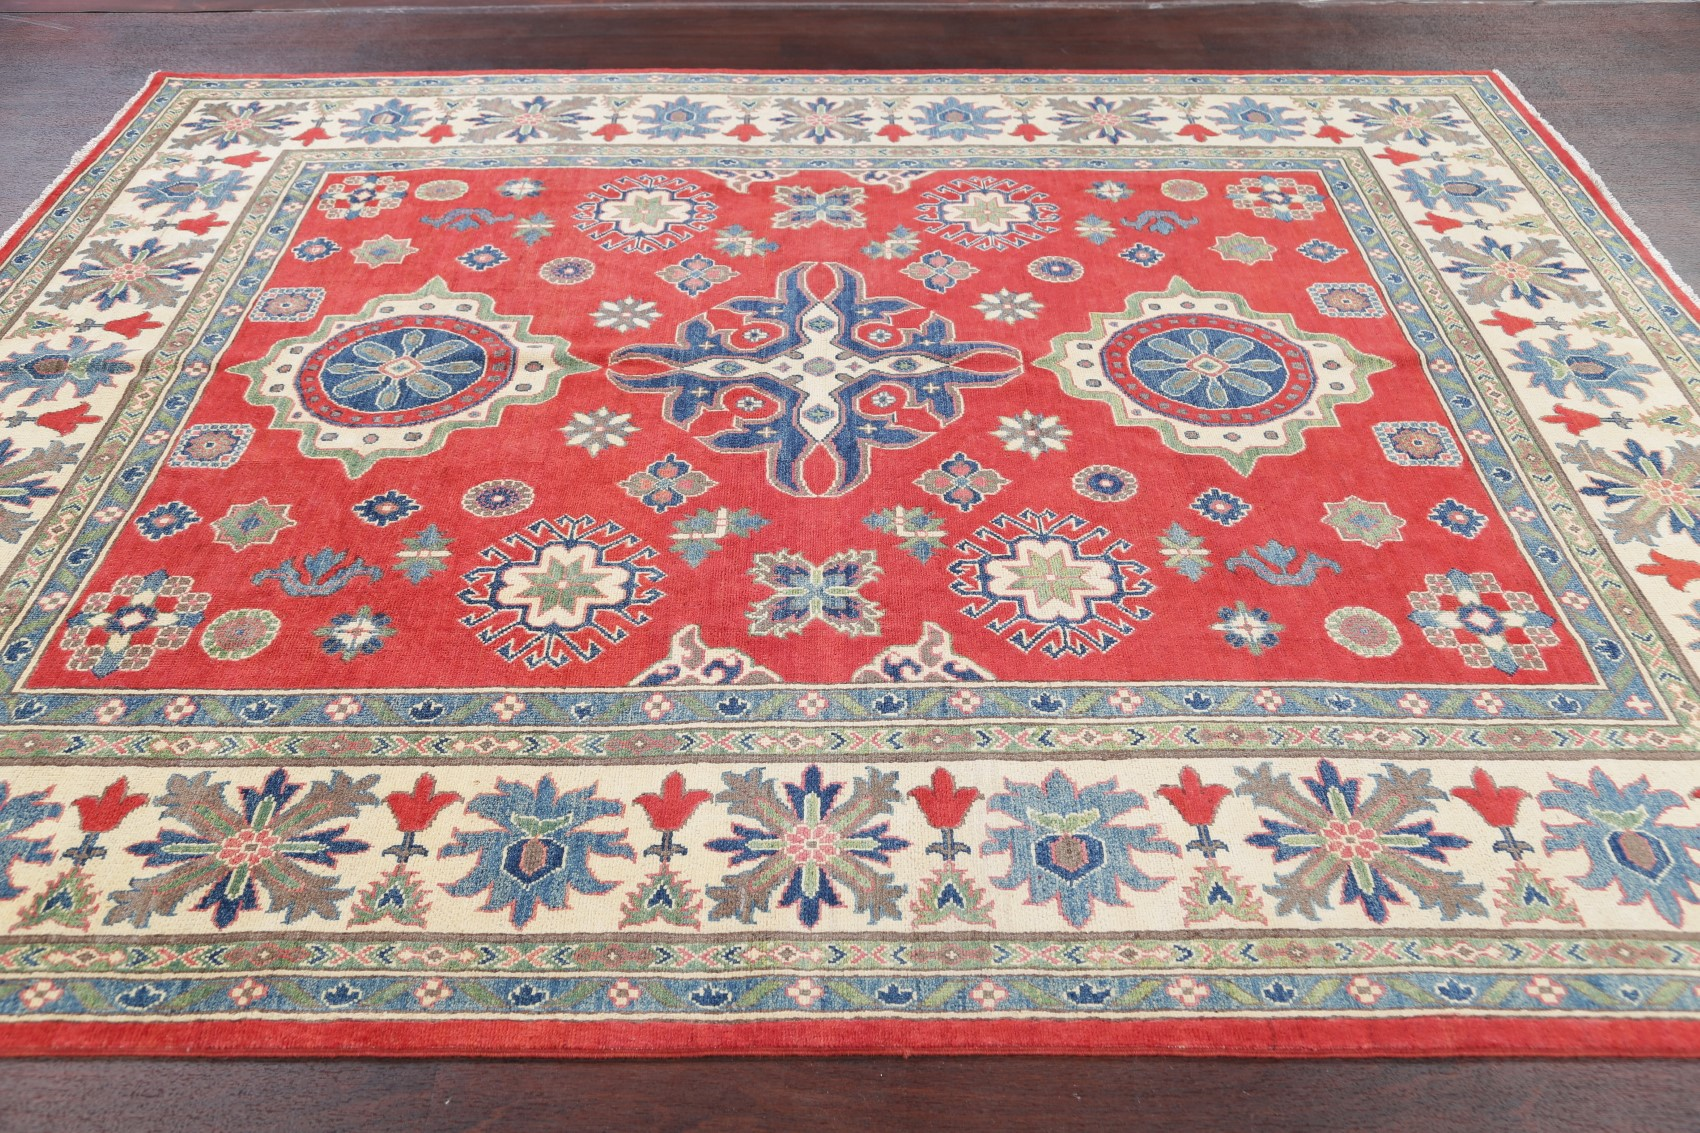 Vegetable Dye Kazak Chechen Geometric Rug 8x10 Oriental